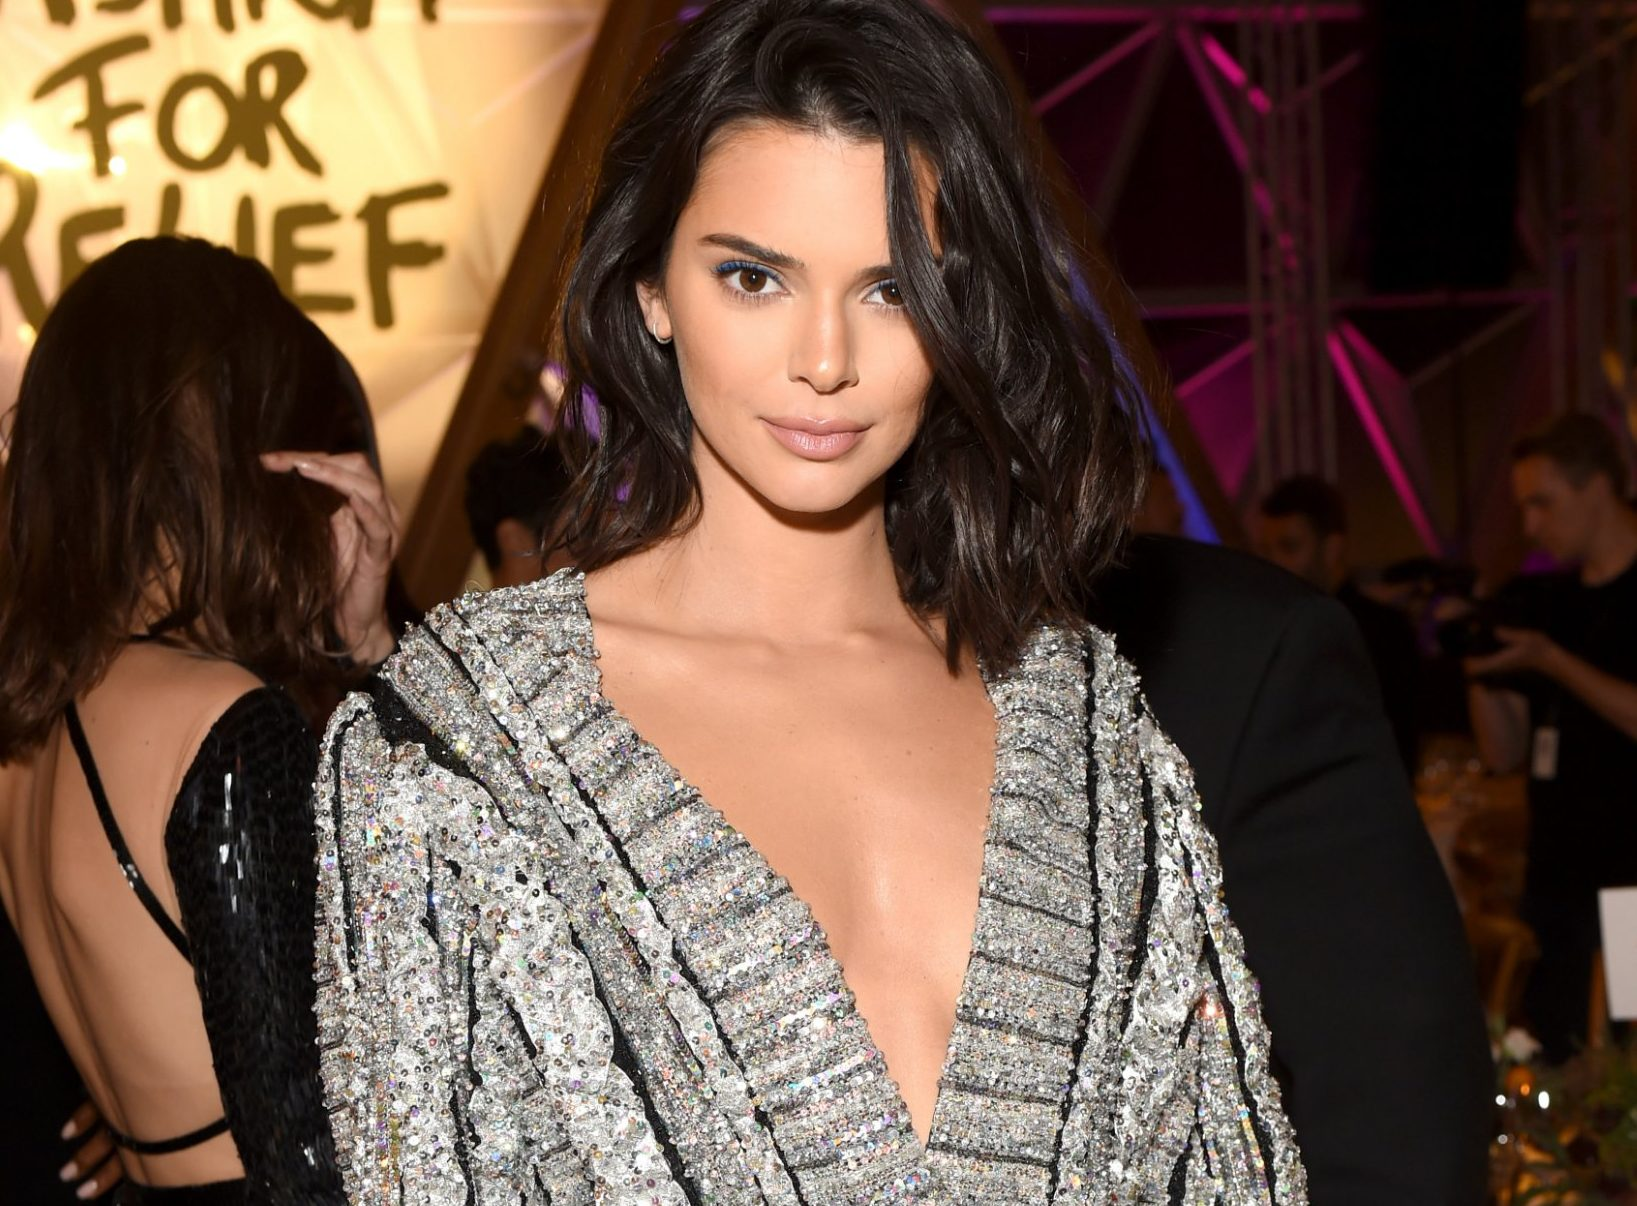 Kendall Jenner infuriates fellow models with thoughts on